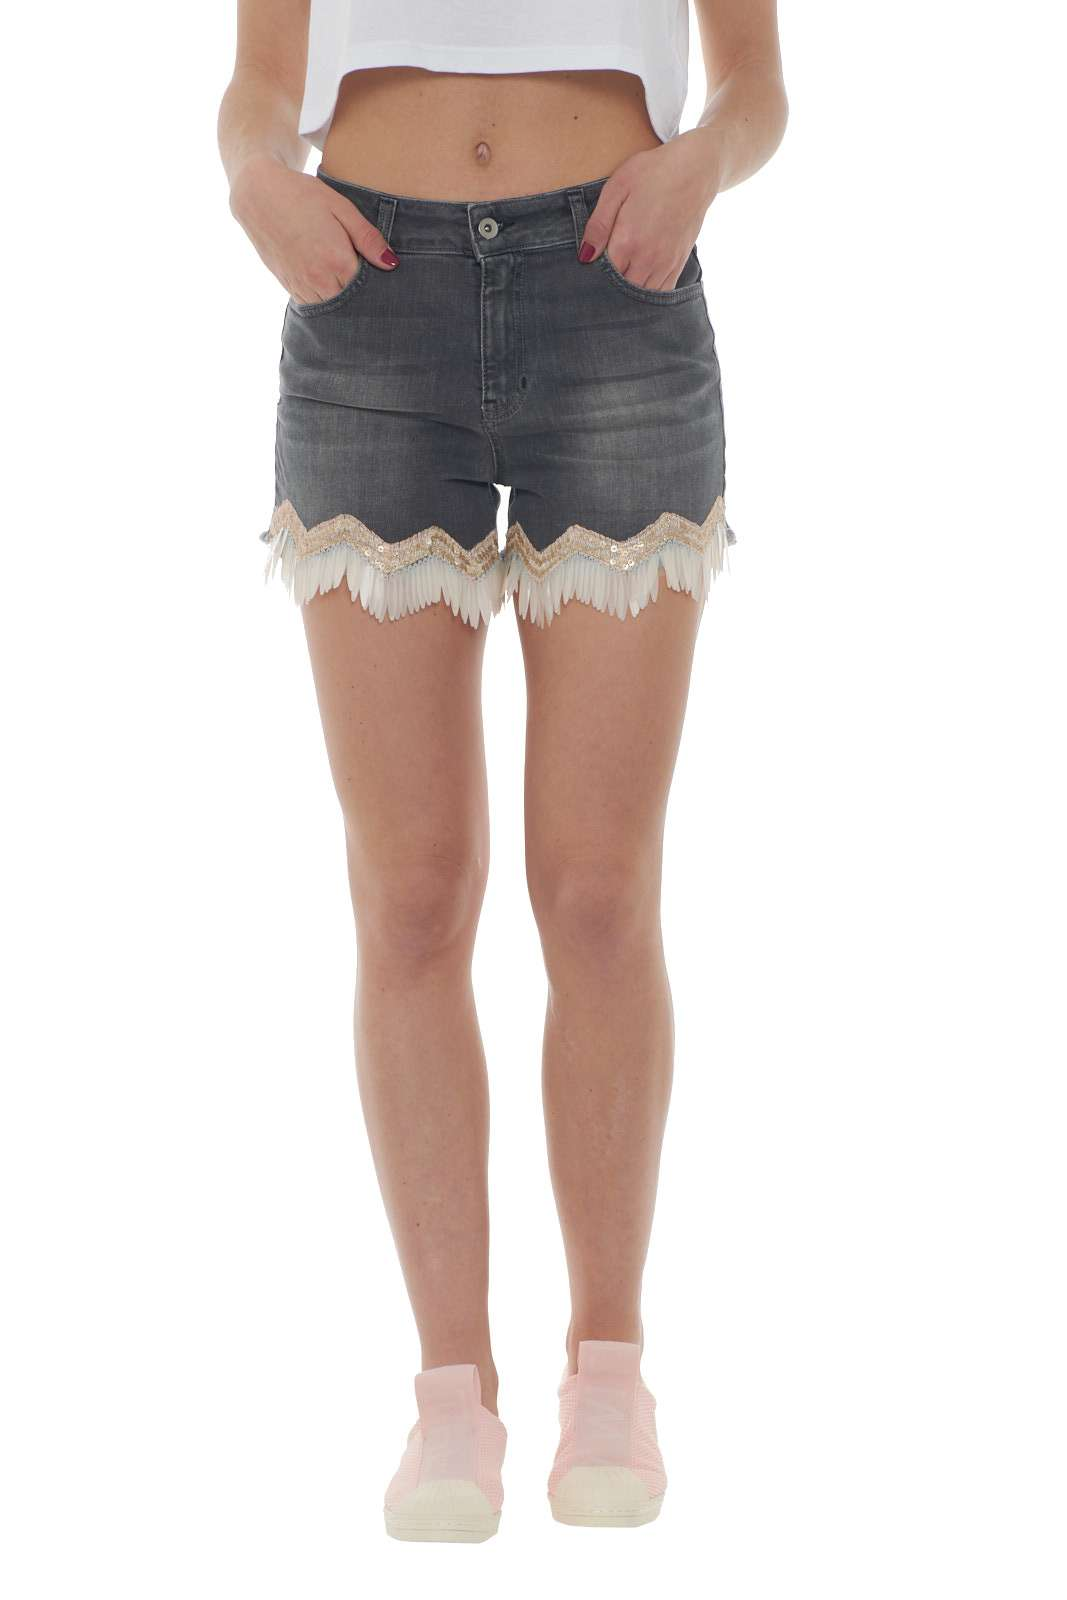 https://www.parmax.com/media/catalog/product/a/i/PE-outlet_parmax-shorts-donna-Le-Voliere-ws19p020d-A.jpg